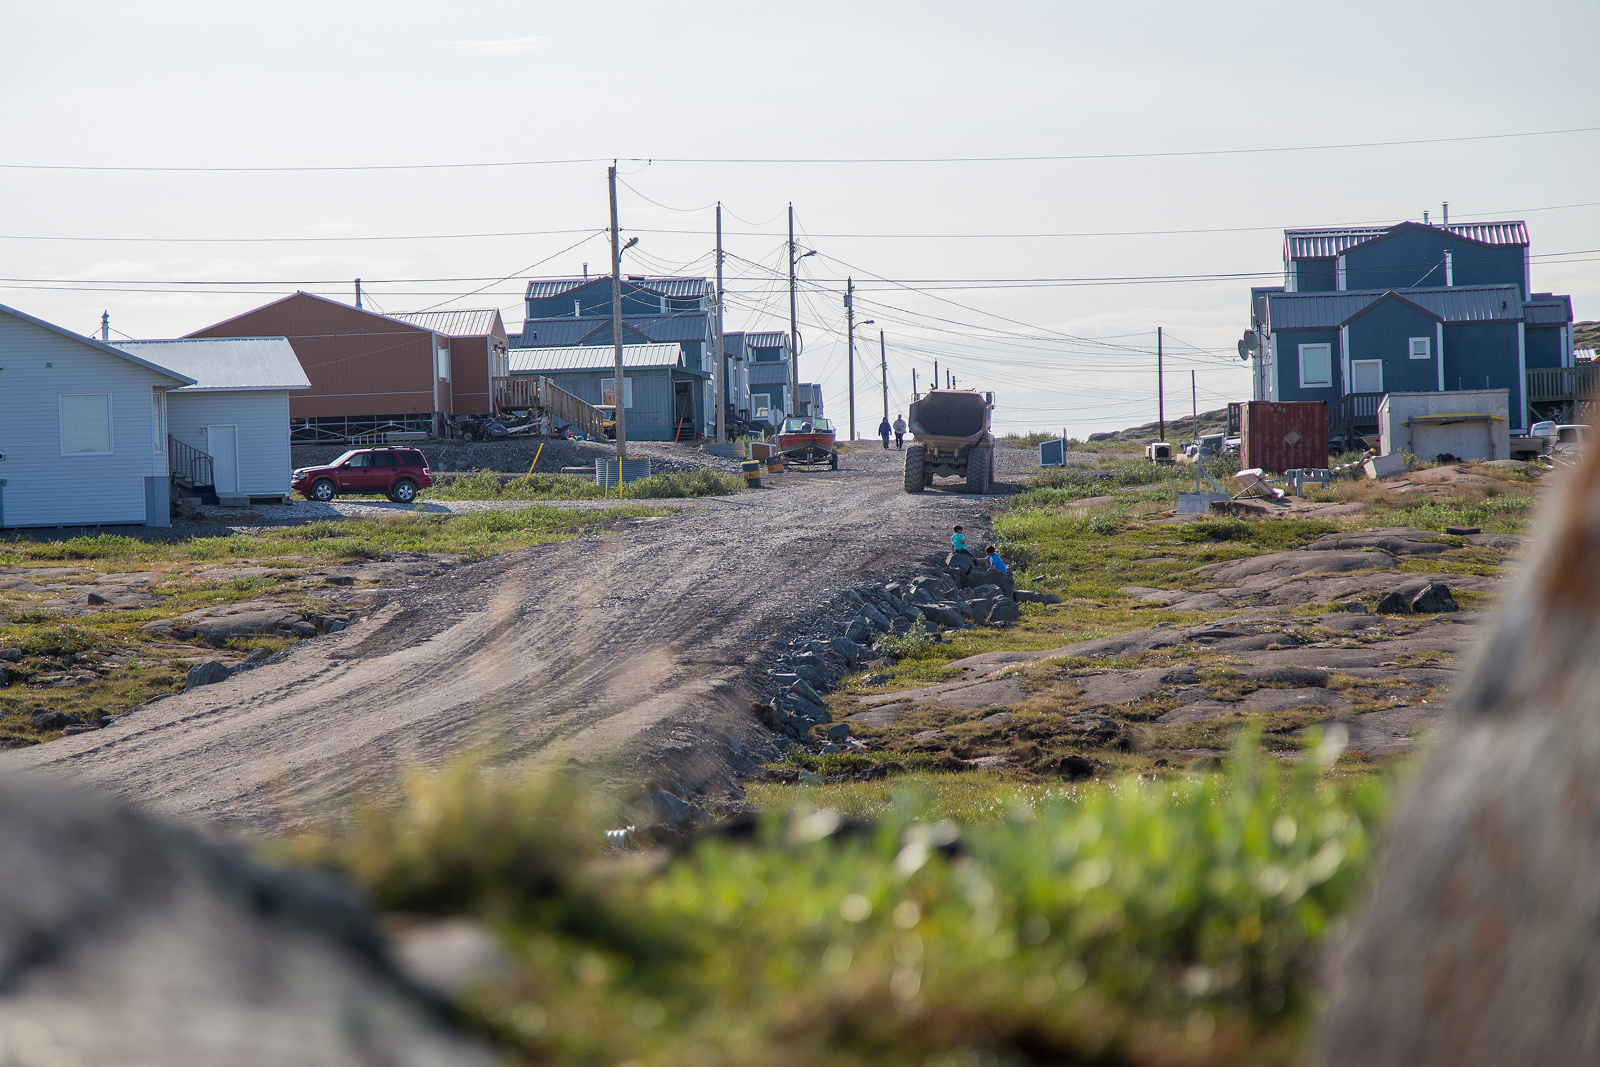 Planning without Lawyers, or Trees: Experiments in Radically Simplifying Zoning in the Arctic, Albert Professional Planners Institute Journal, Spring 2016